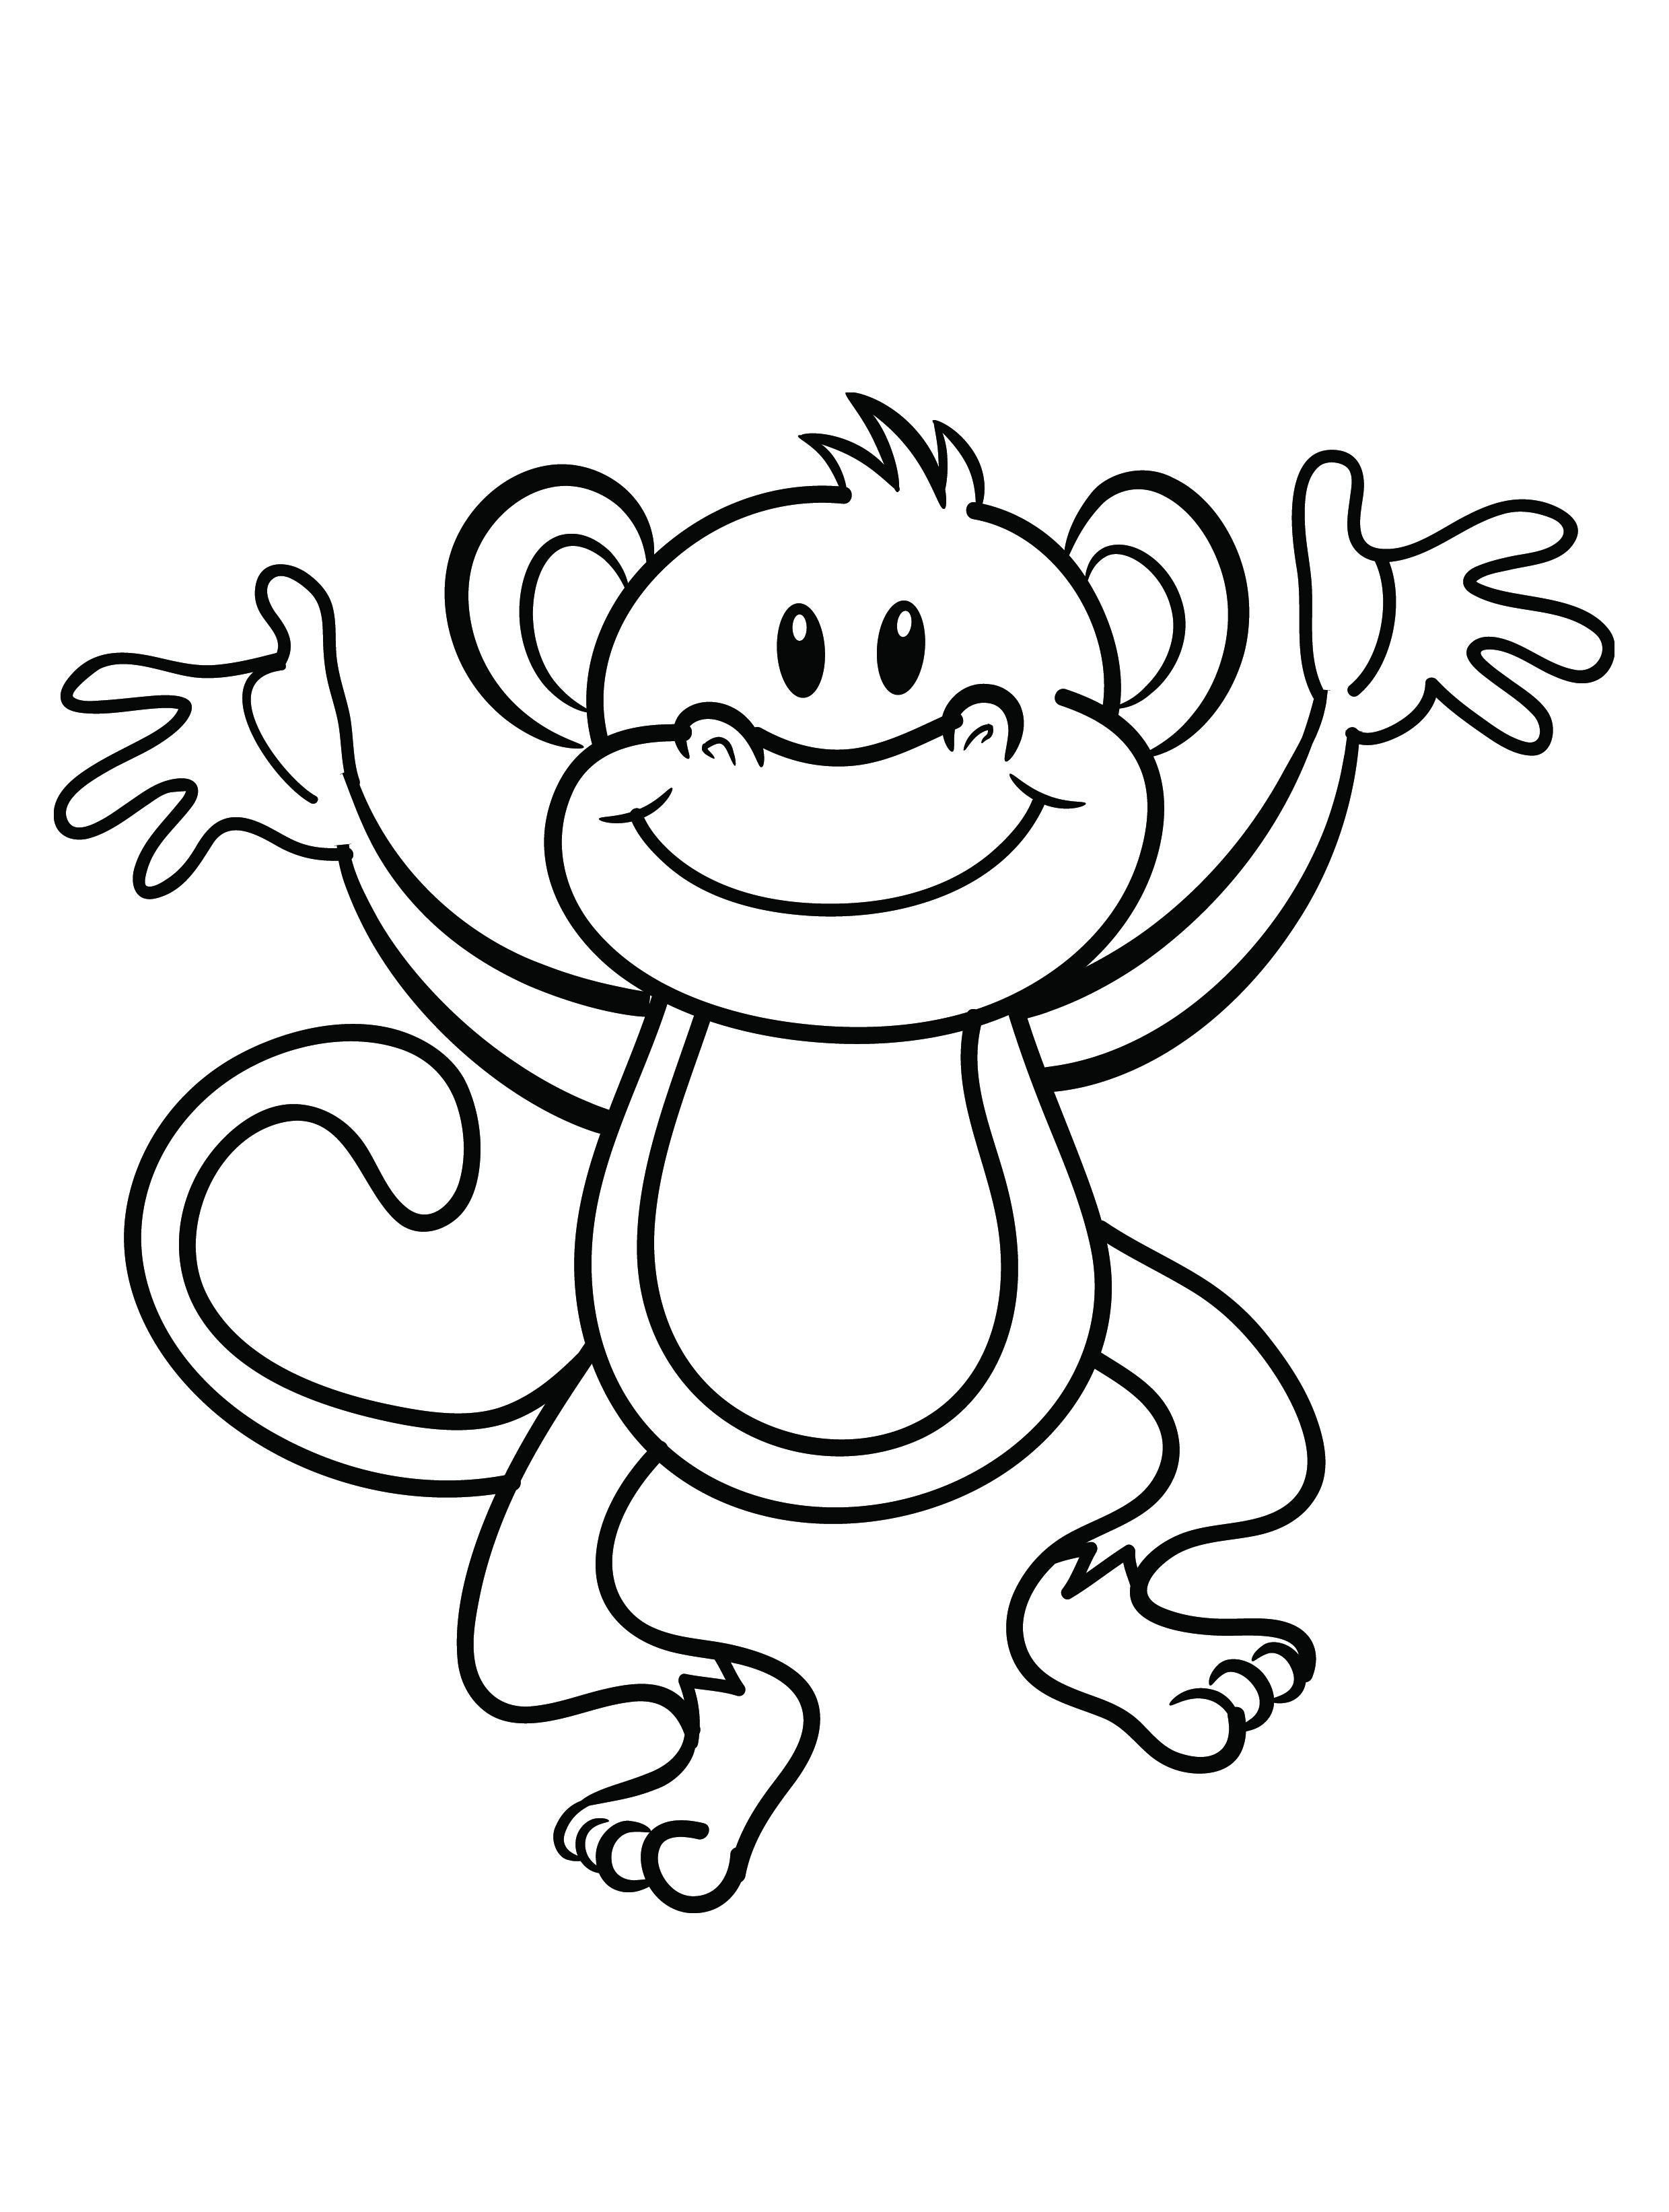 Monkey Coloring Pages for Kids | Coloring Pages | Pinterest | Monkey